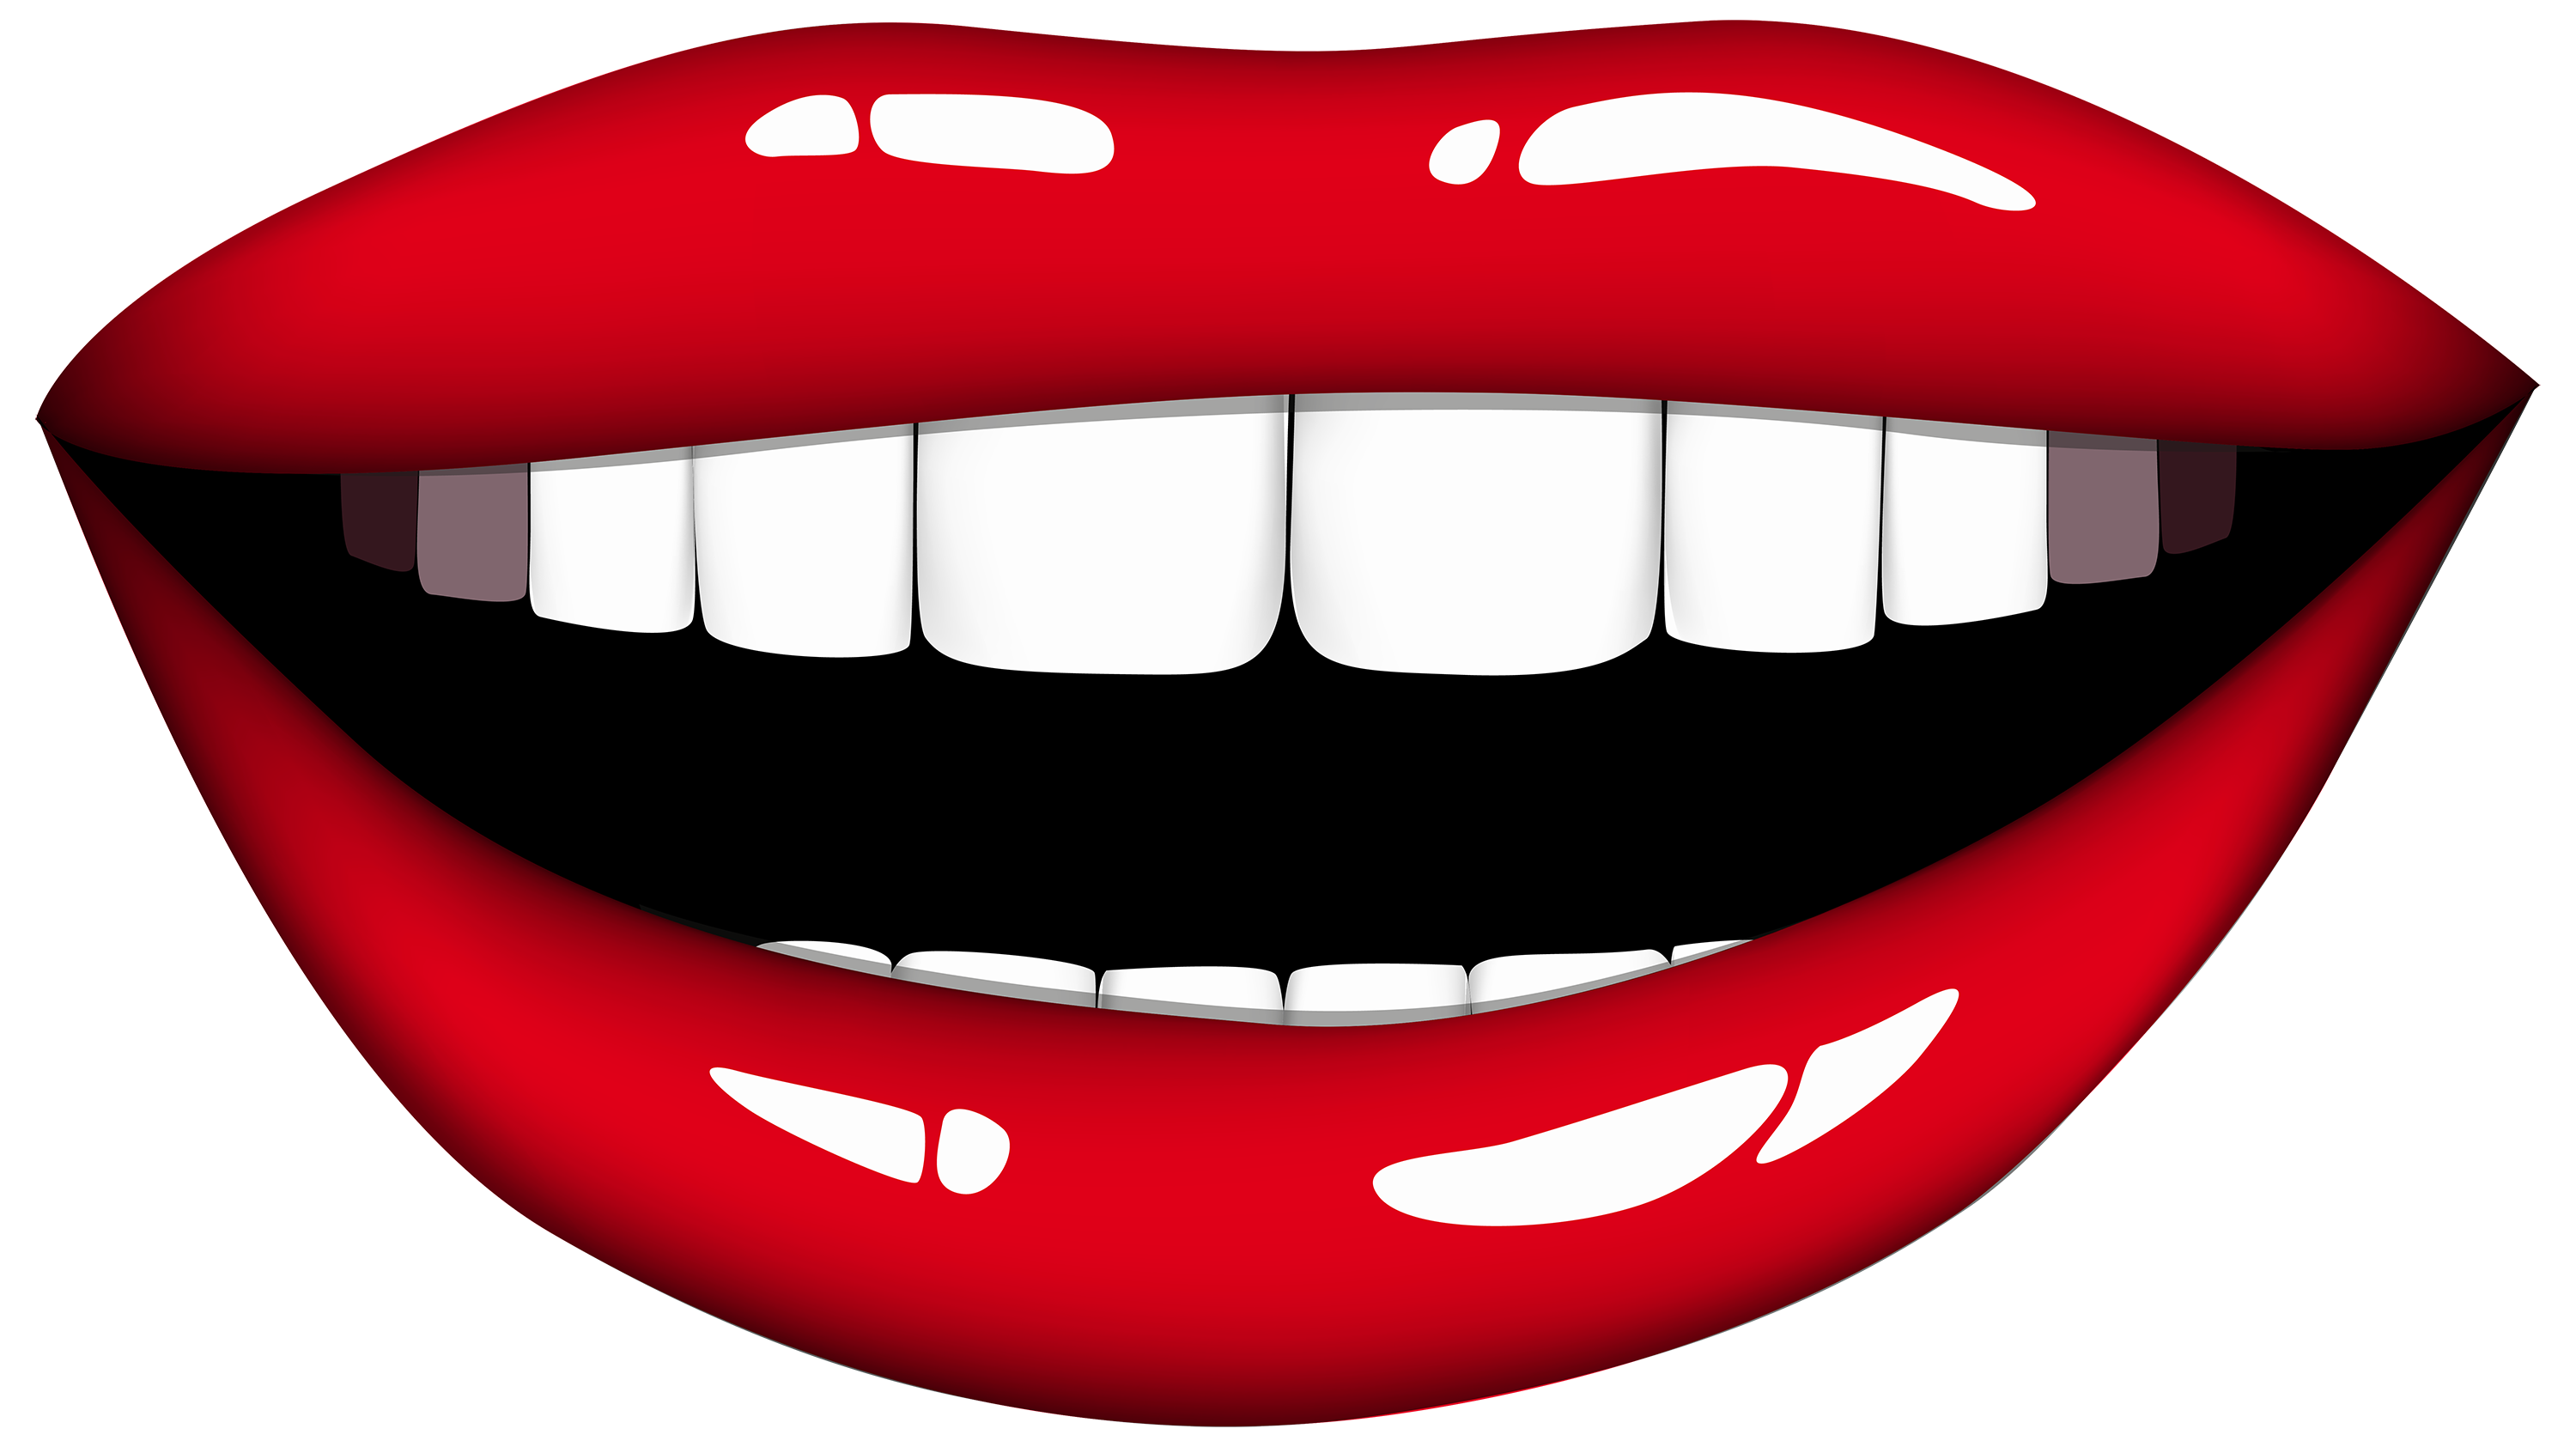 Mouth clipart. Smiling png best web